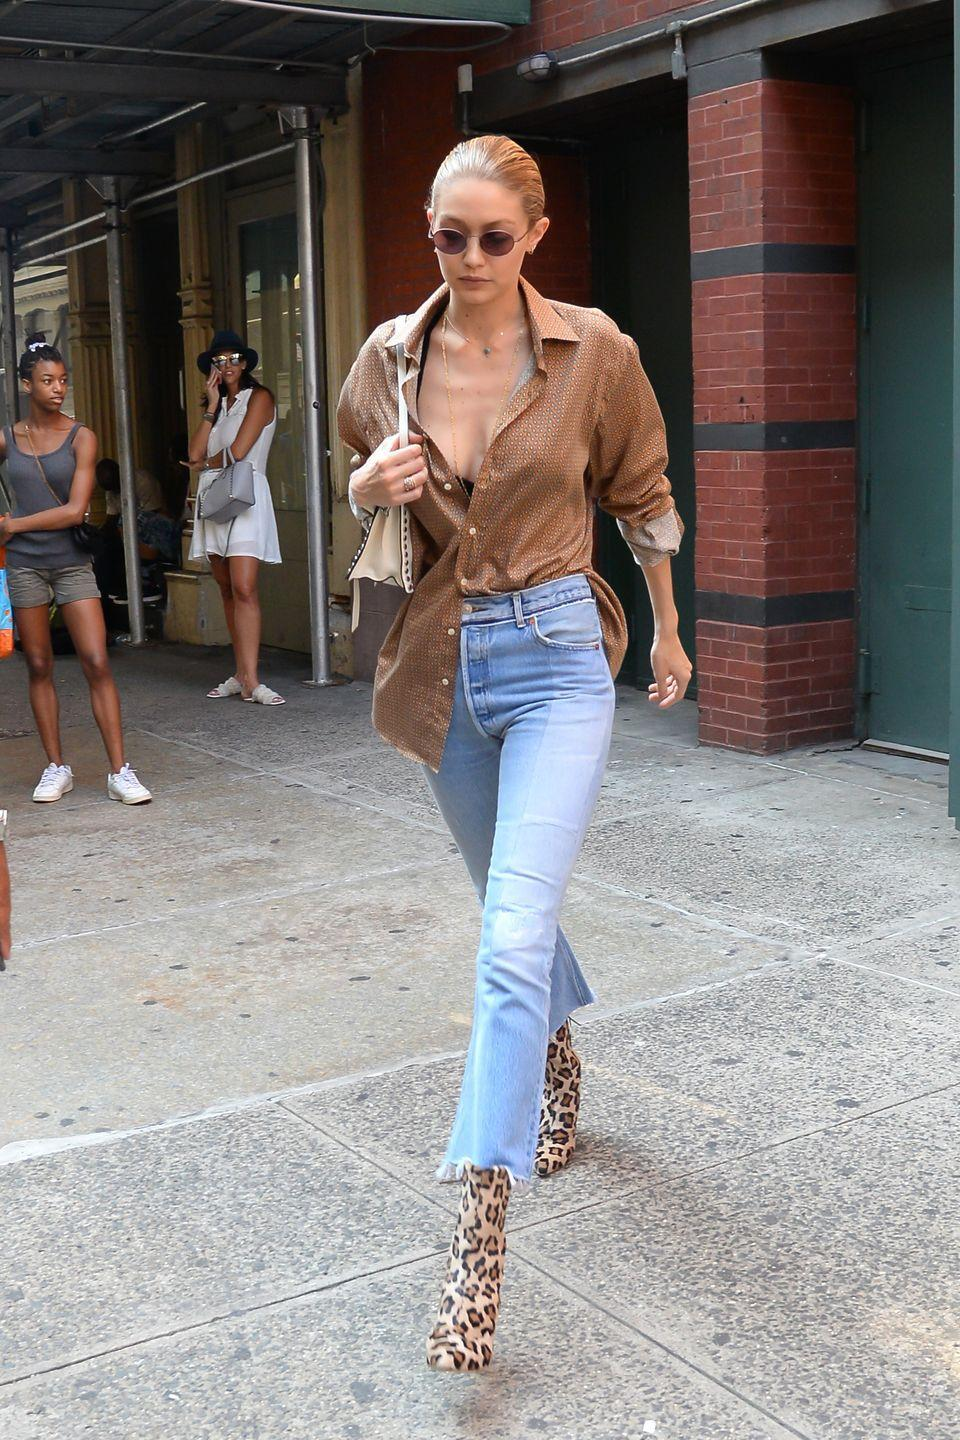 <p>In an Etro shirt, high-waisted RE/DONE jeans and leopard print booties while out in NYC. </p>